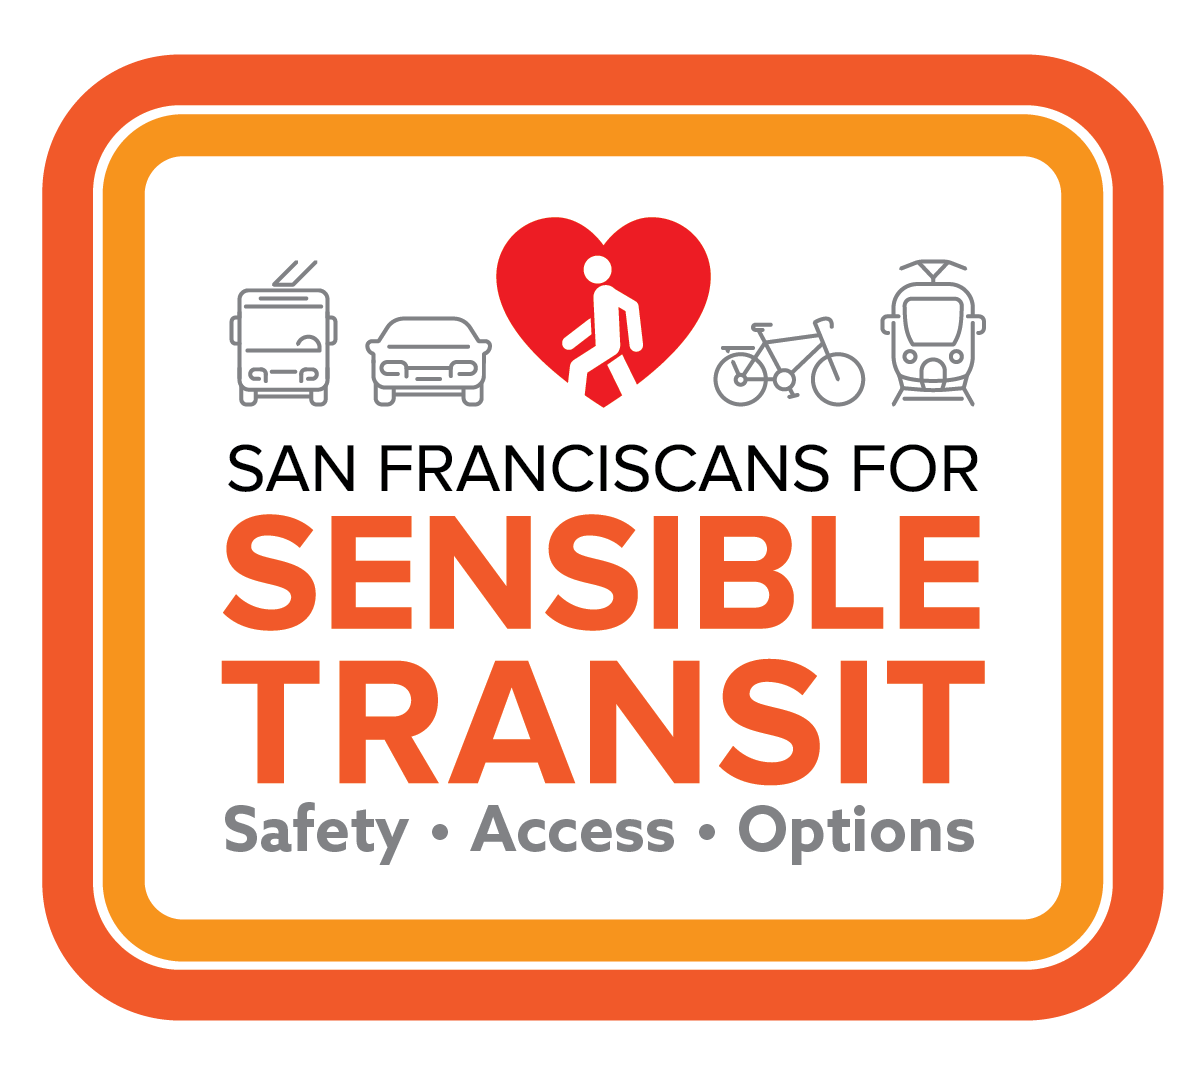 Welcome to San Franciscans for Sensible Transit